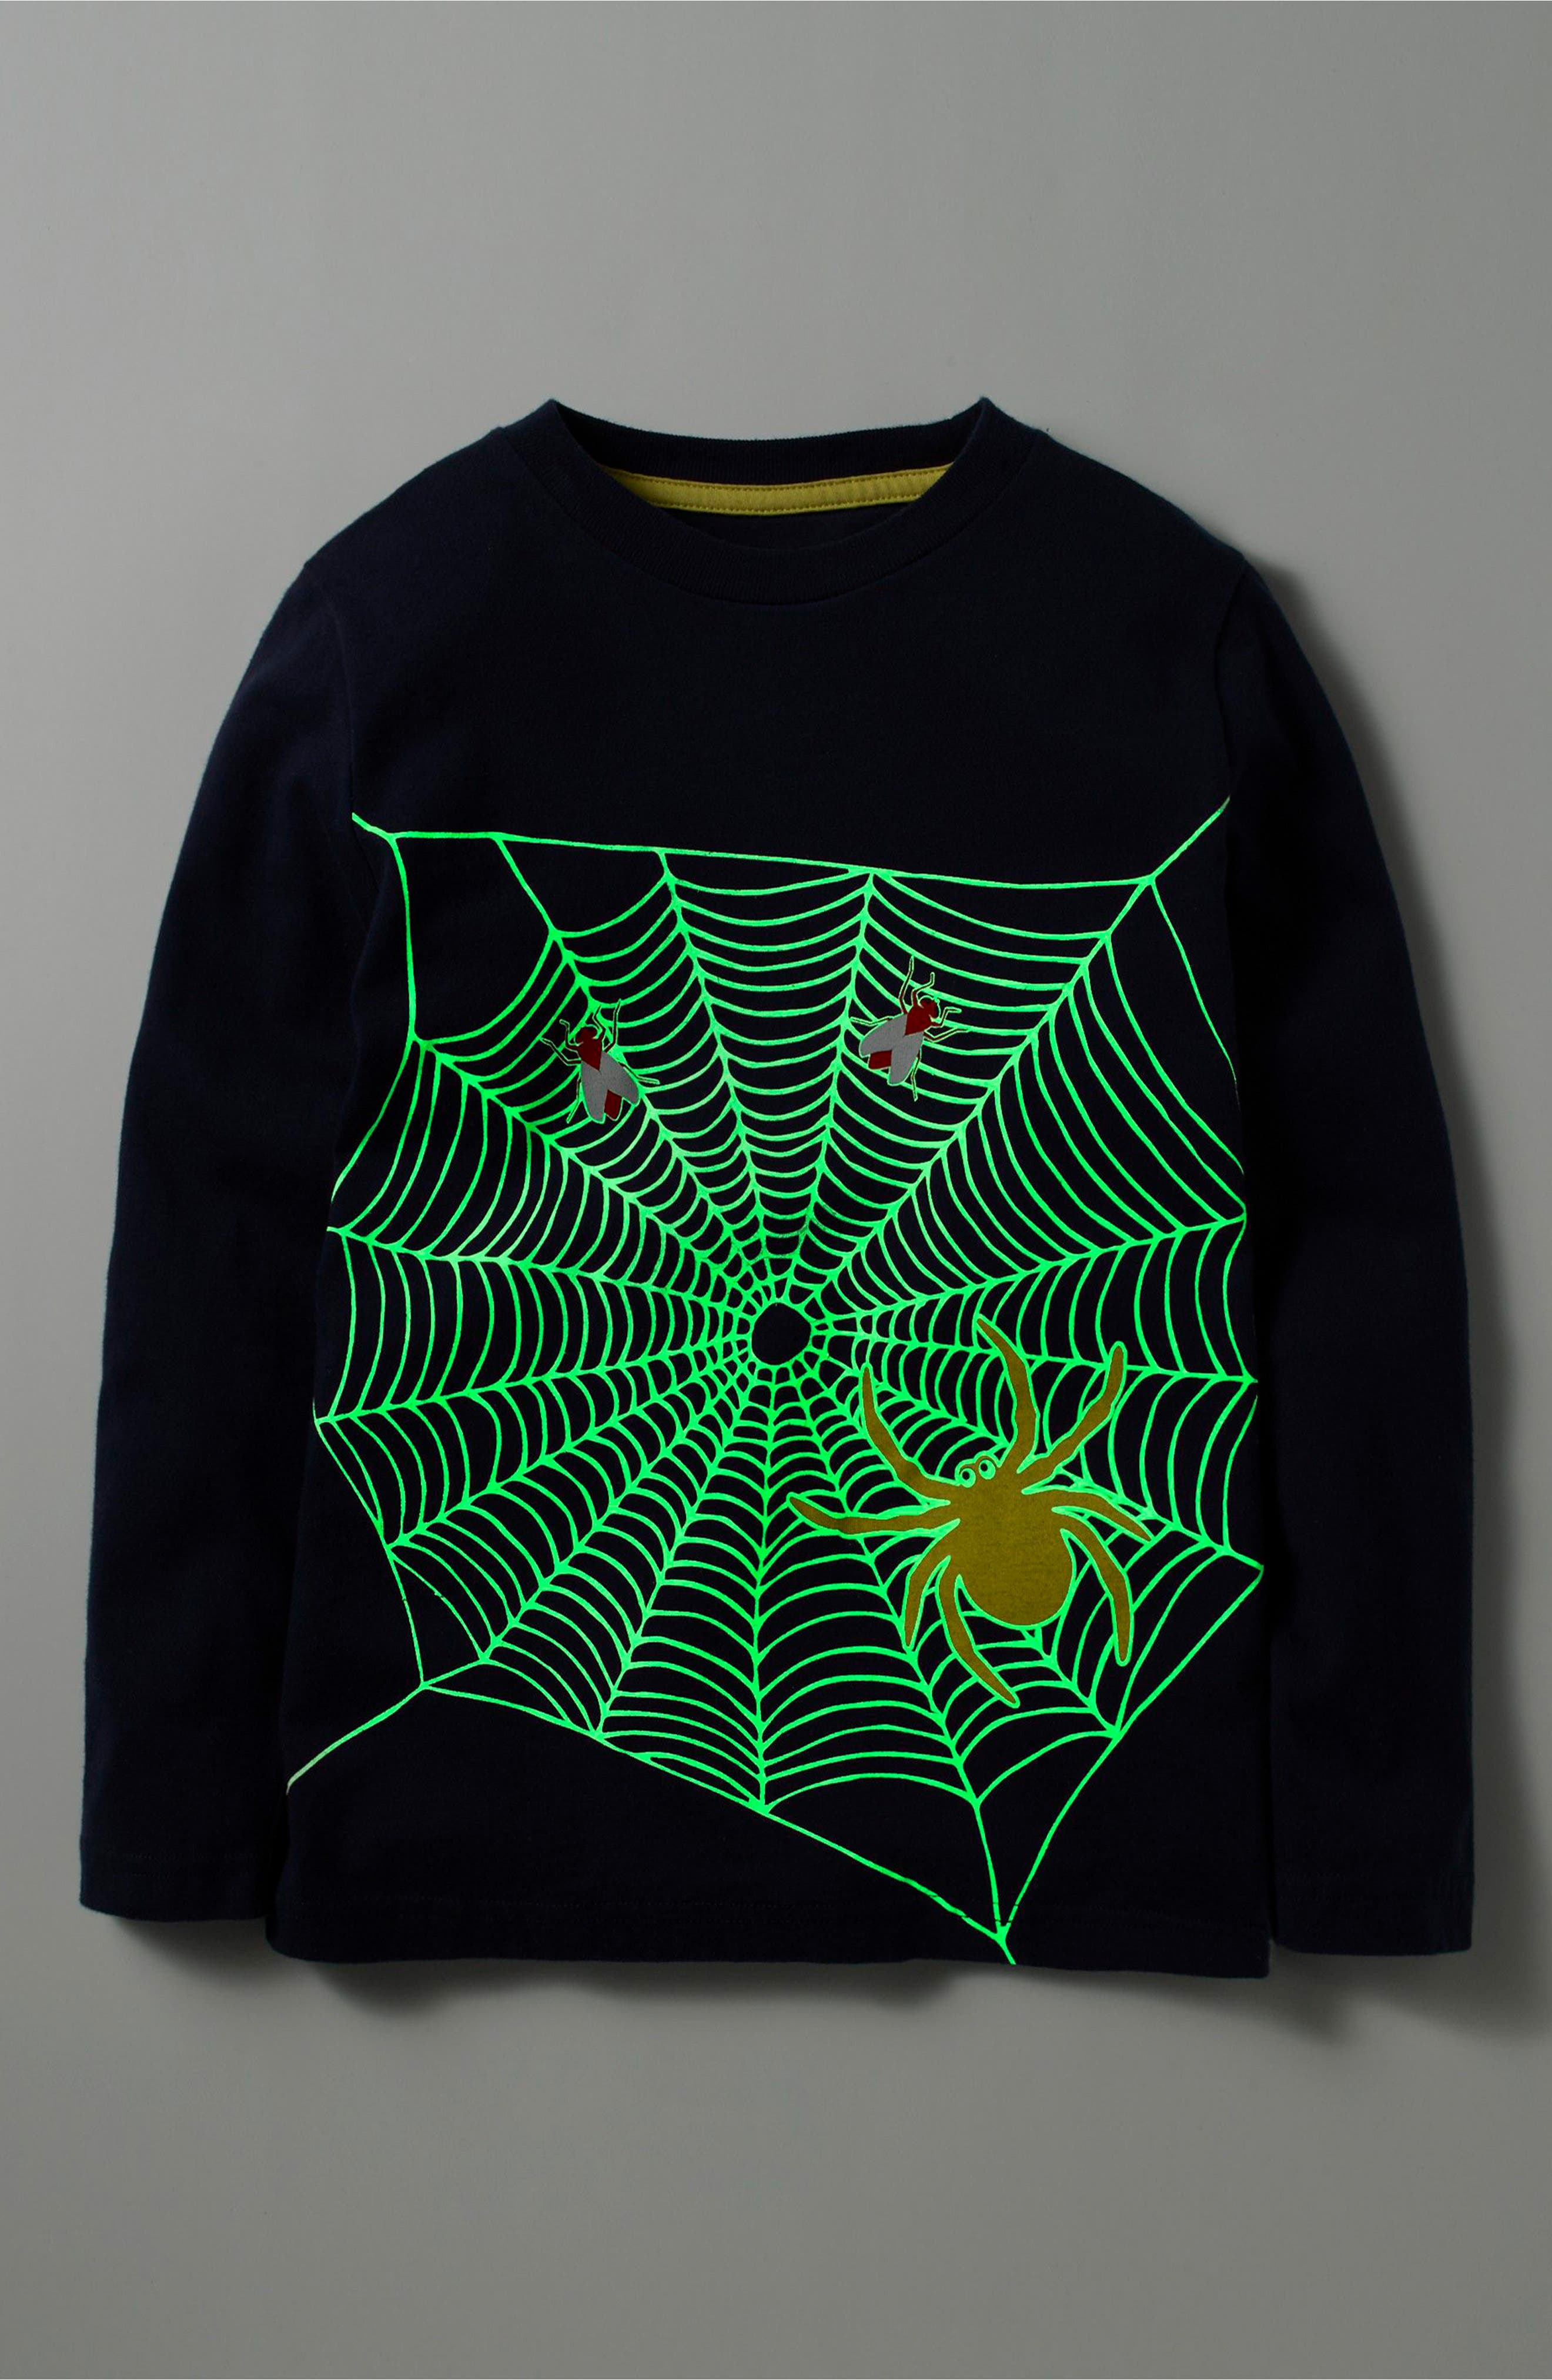 Spooky Glow T-Shirt,                             Alternate thumbnail 2, color,                             Navy Spider